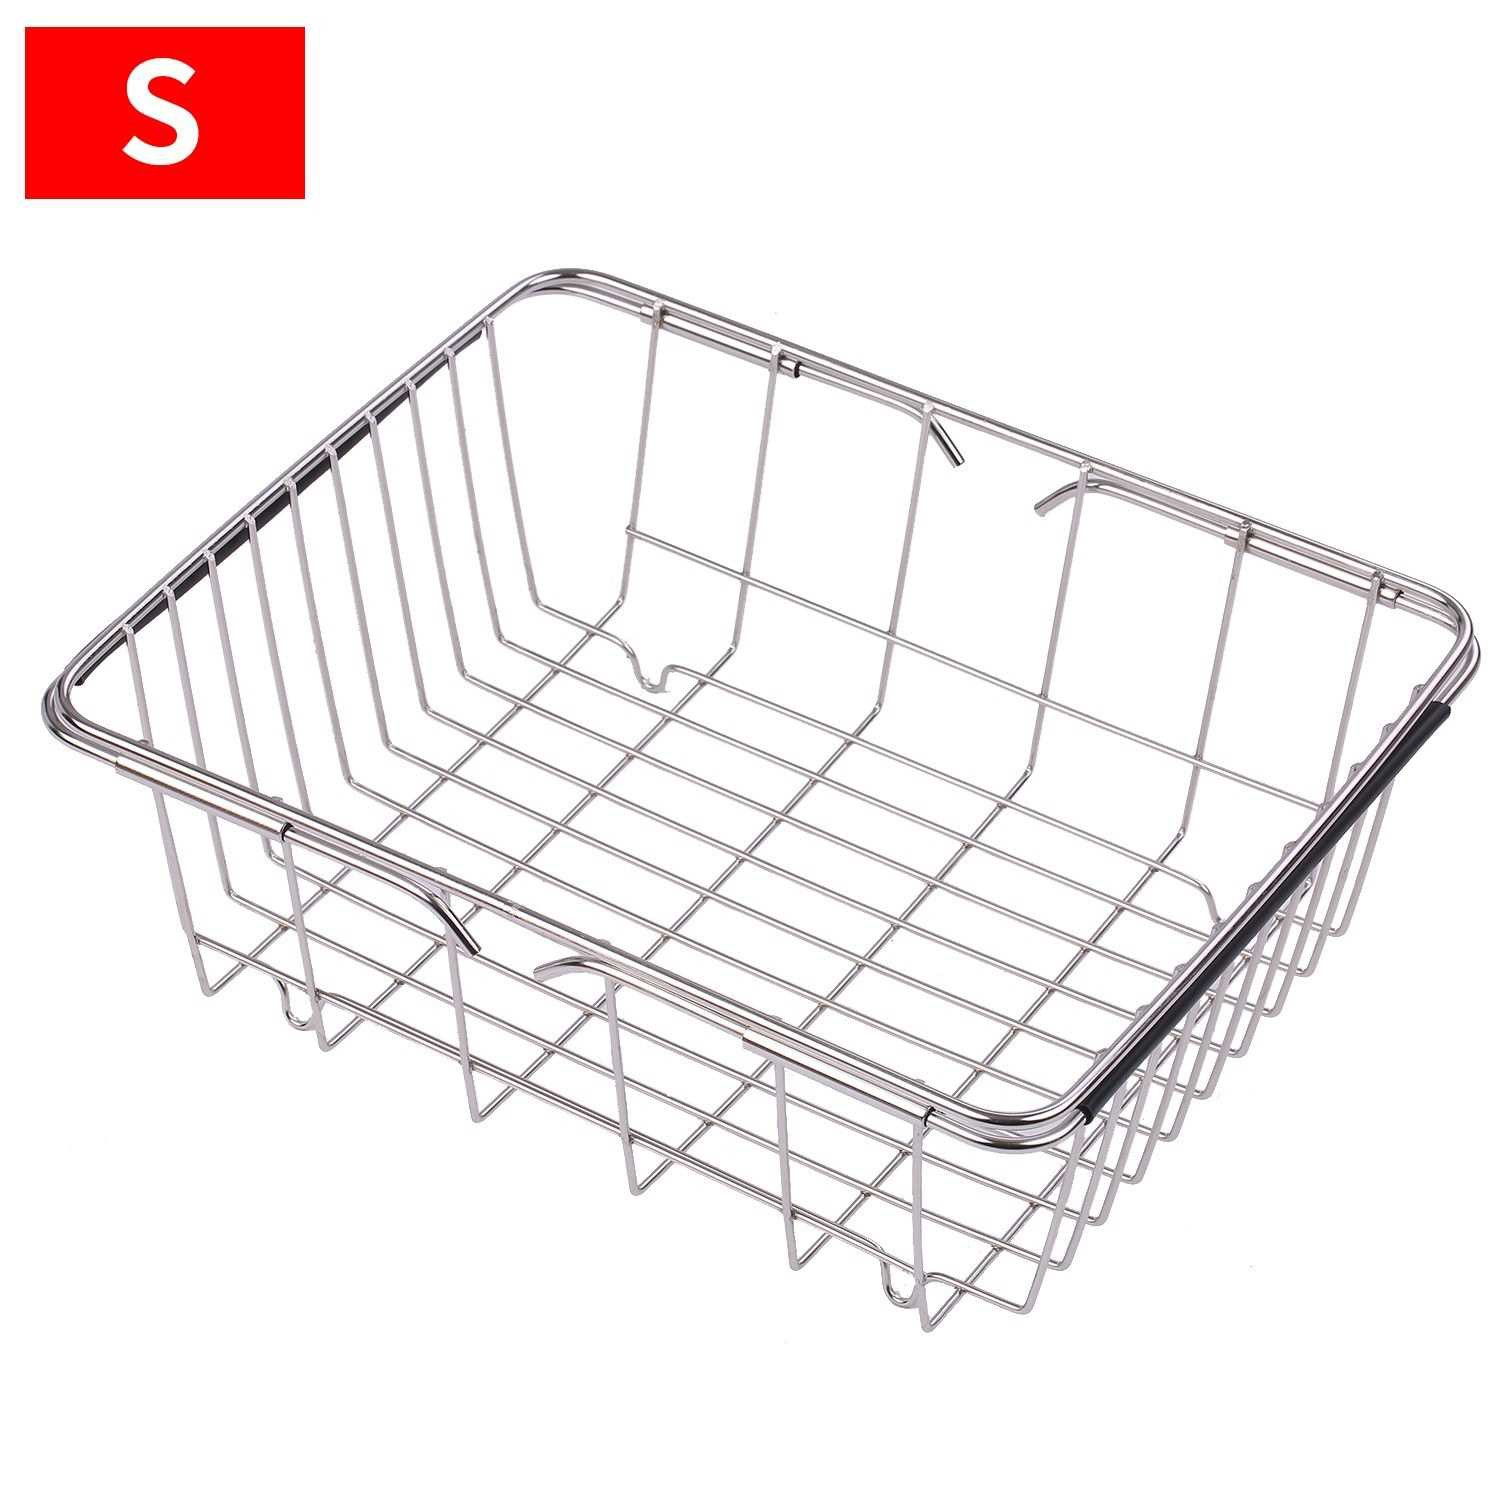 Dish Sink Rack Over Sink Drying Bowl Holder Stainless Steel Vegetables Washing Basket Kitchen Shelf Cutlery Drainer (Si